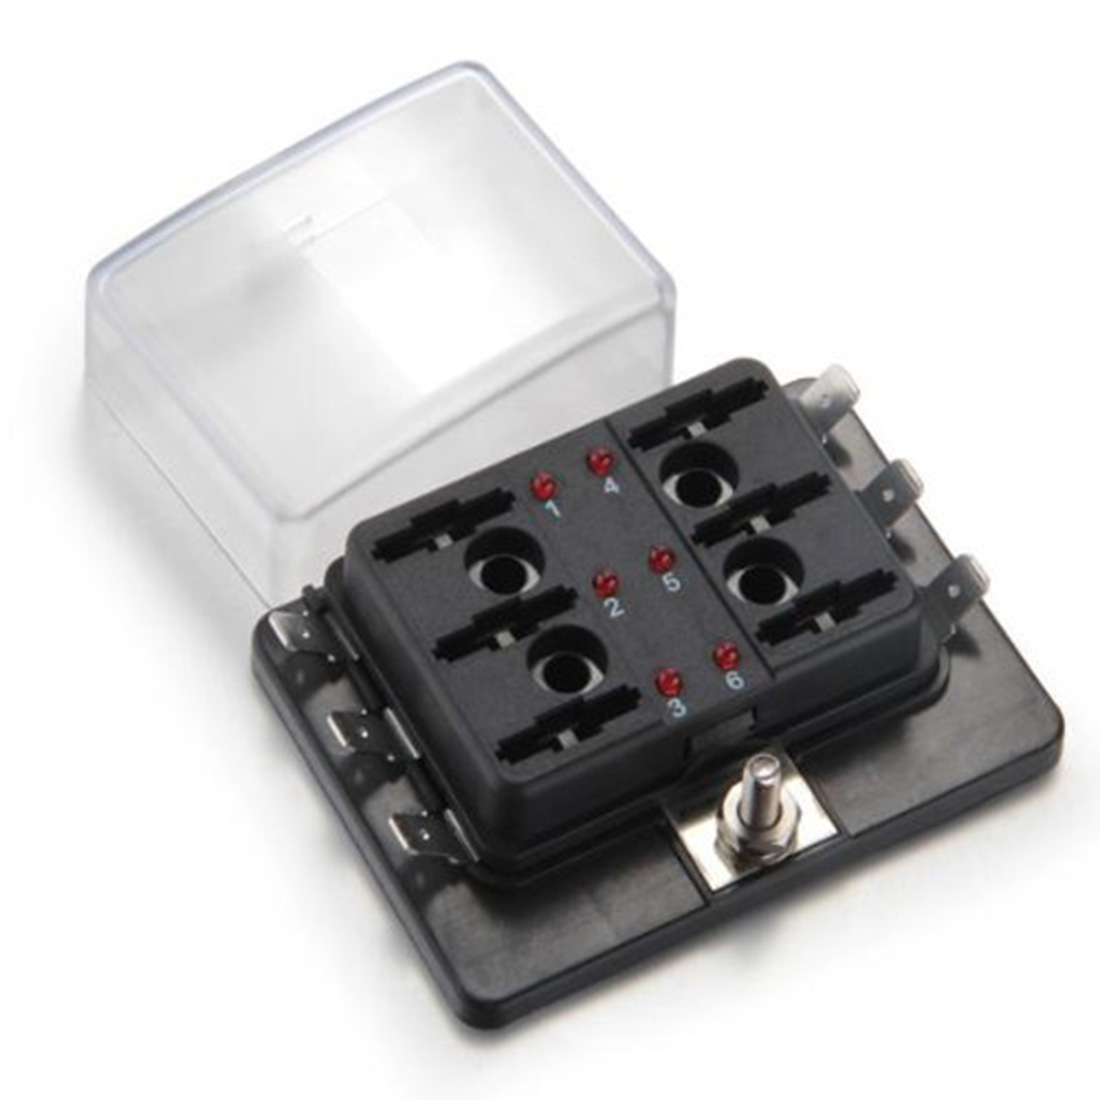 online buy whole led blade fuse from led blade fuse hot new top quality 6 way blade fuse box holder positive bus in 12v led